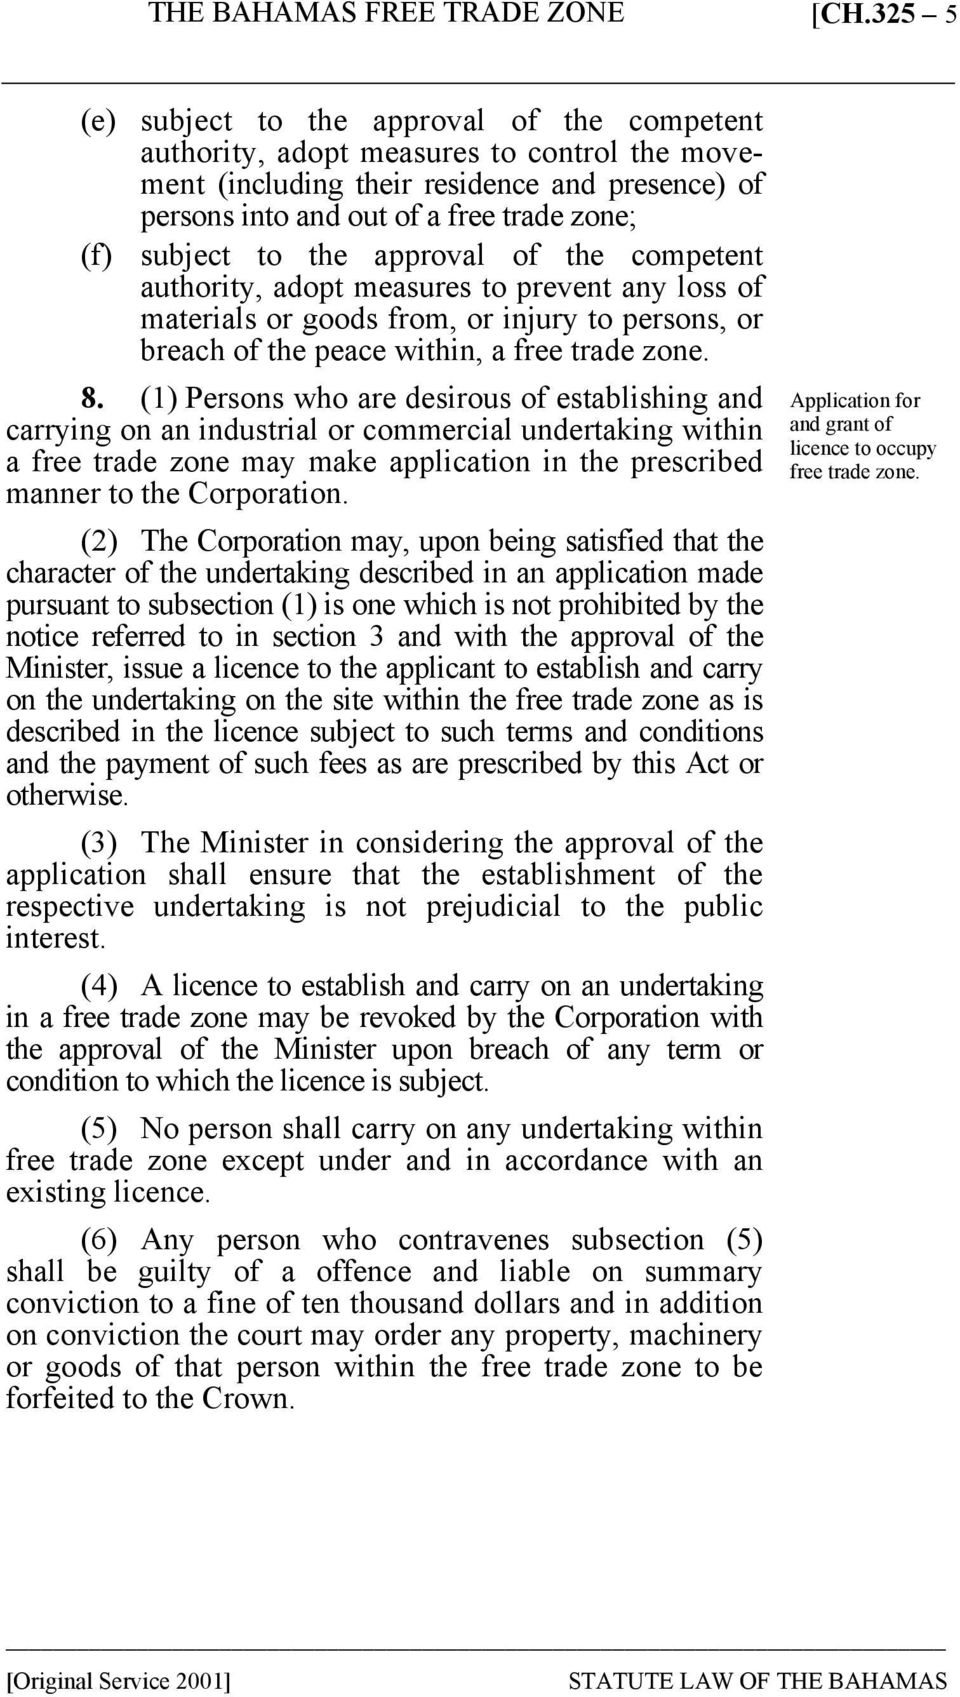 (1) Persons who are desirous of establishing and carrying on an industrial or commercial undertaking within a free trade zone may make application in the prescribed manner to the Corporation.